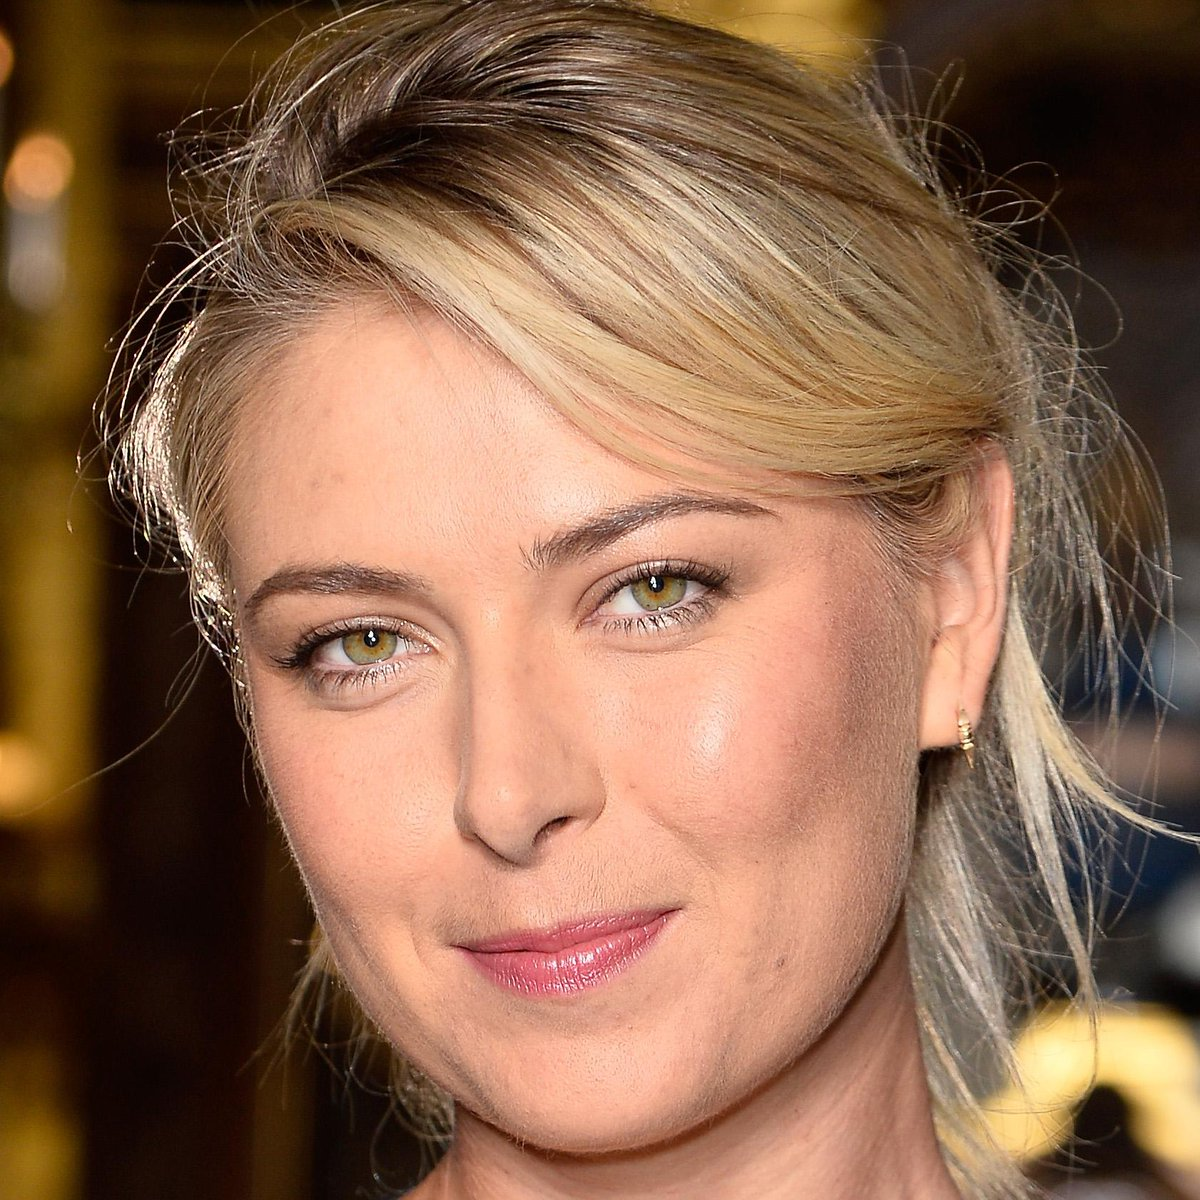 RT @BazaarBeauty: Kicking off our October Beauty Muses is @MariaSharapova and her glowing skin http://t.co/EnKouJEw1B #BeautyMuse http://t.…